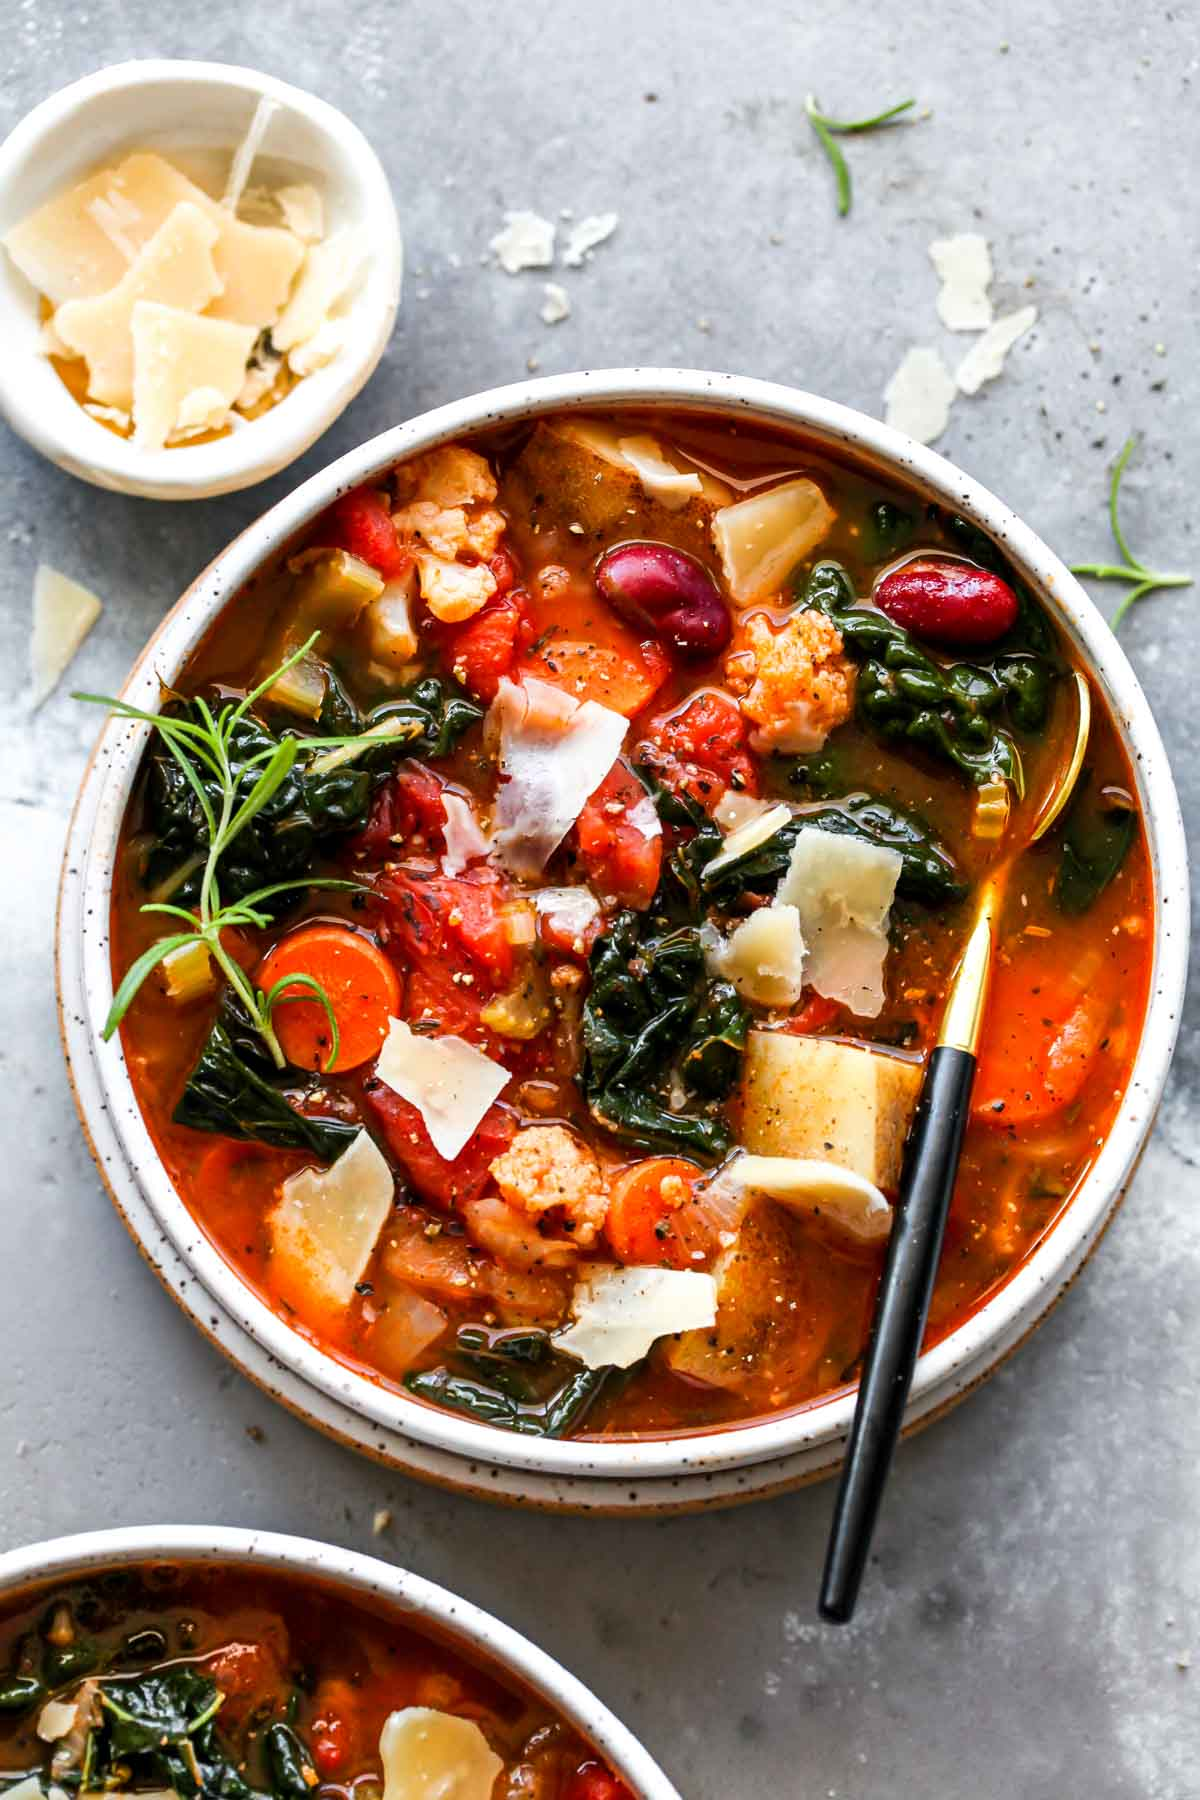 Bowl of vegetarian soup with potatoes, kale, and tomatoes